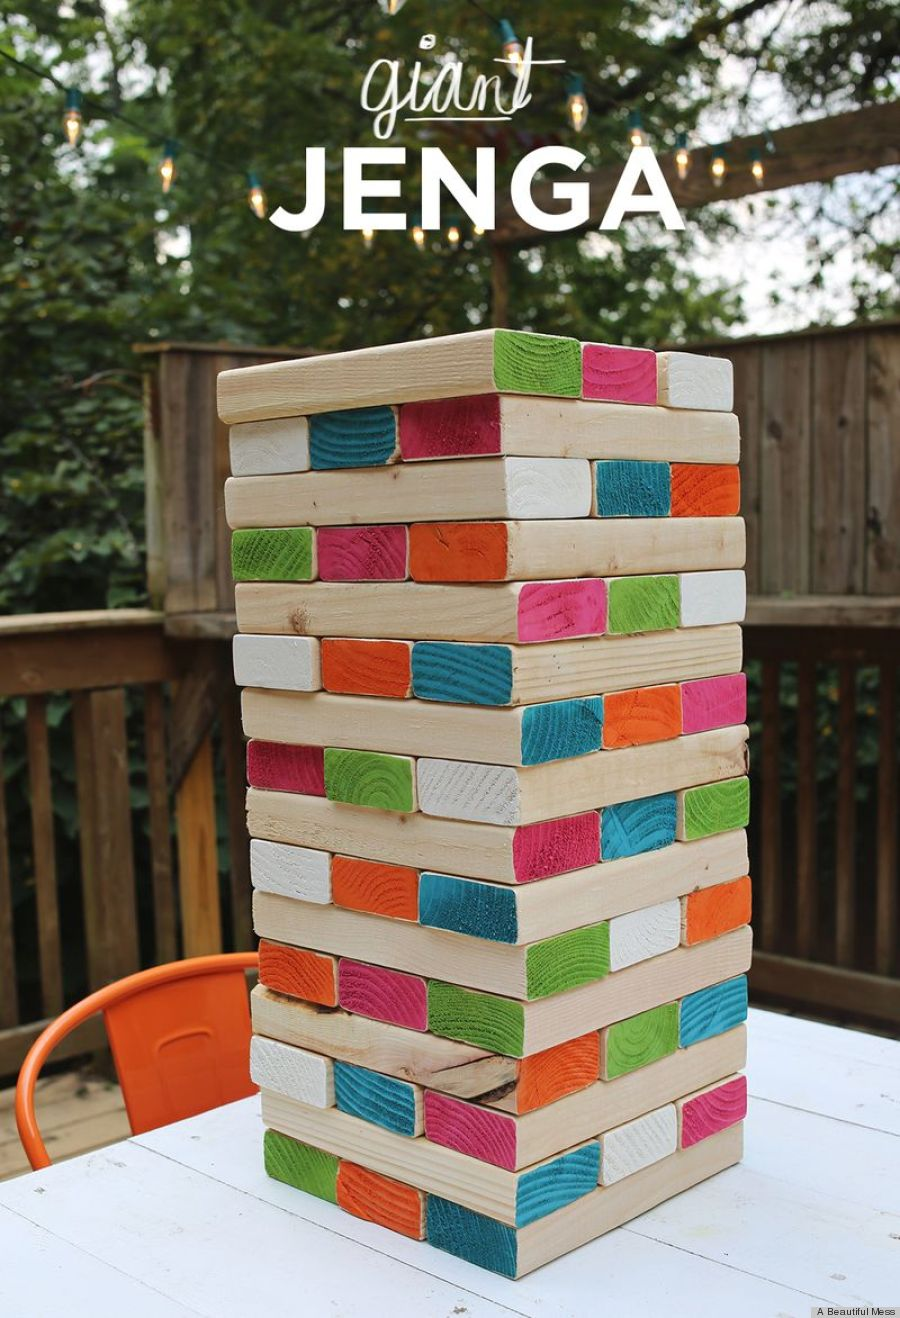 Diy Giant Jenga Is The Coolest Backyard Game Ever (photo